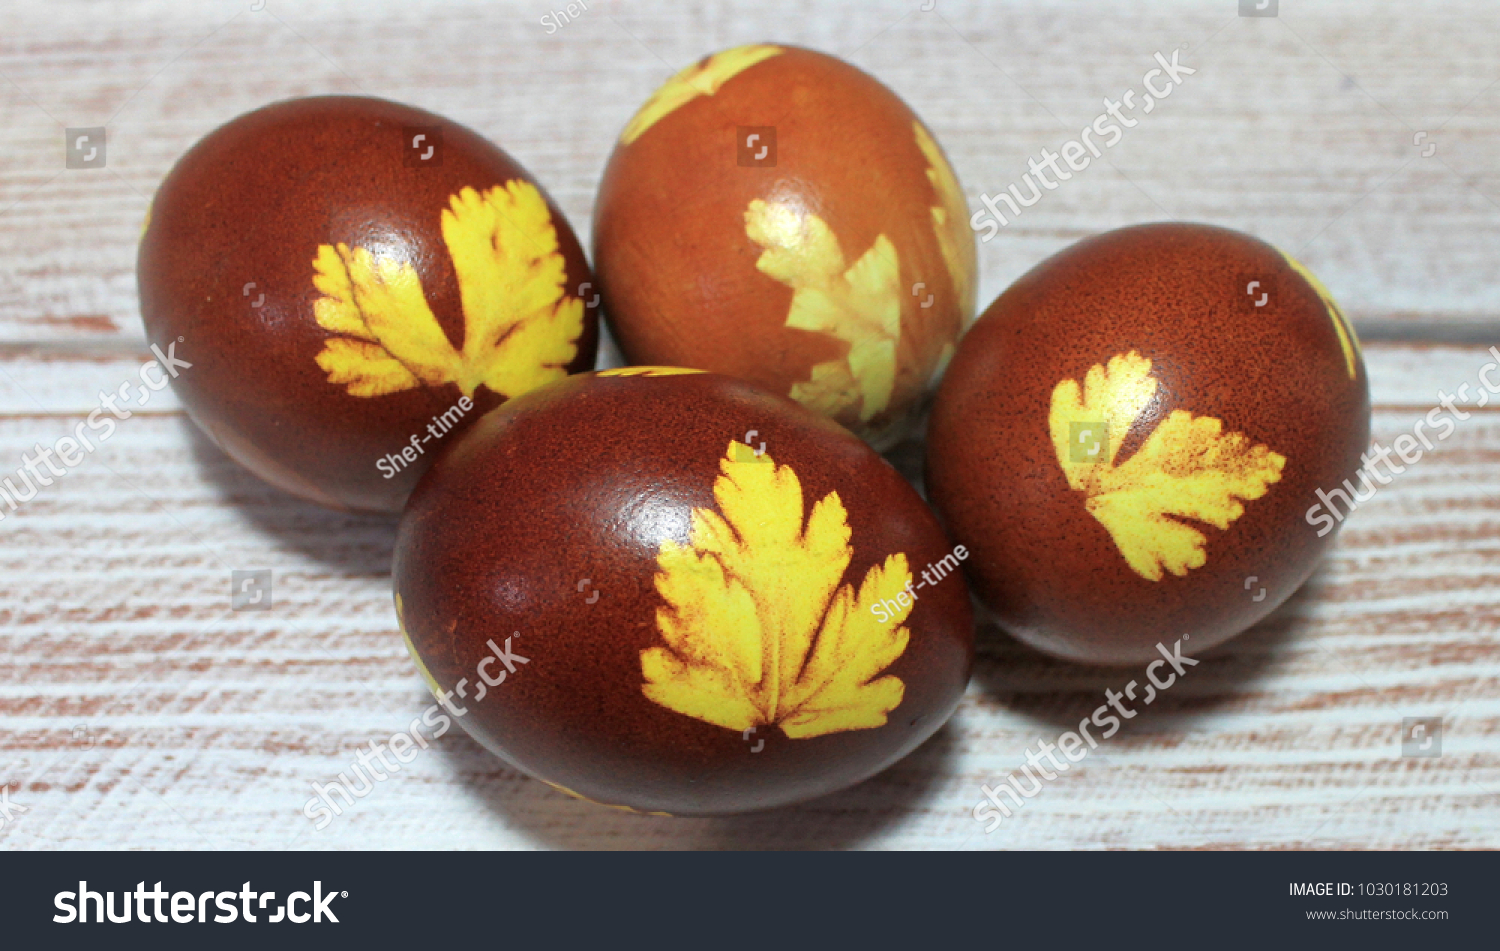 How to paint eggs with husks